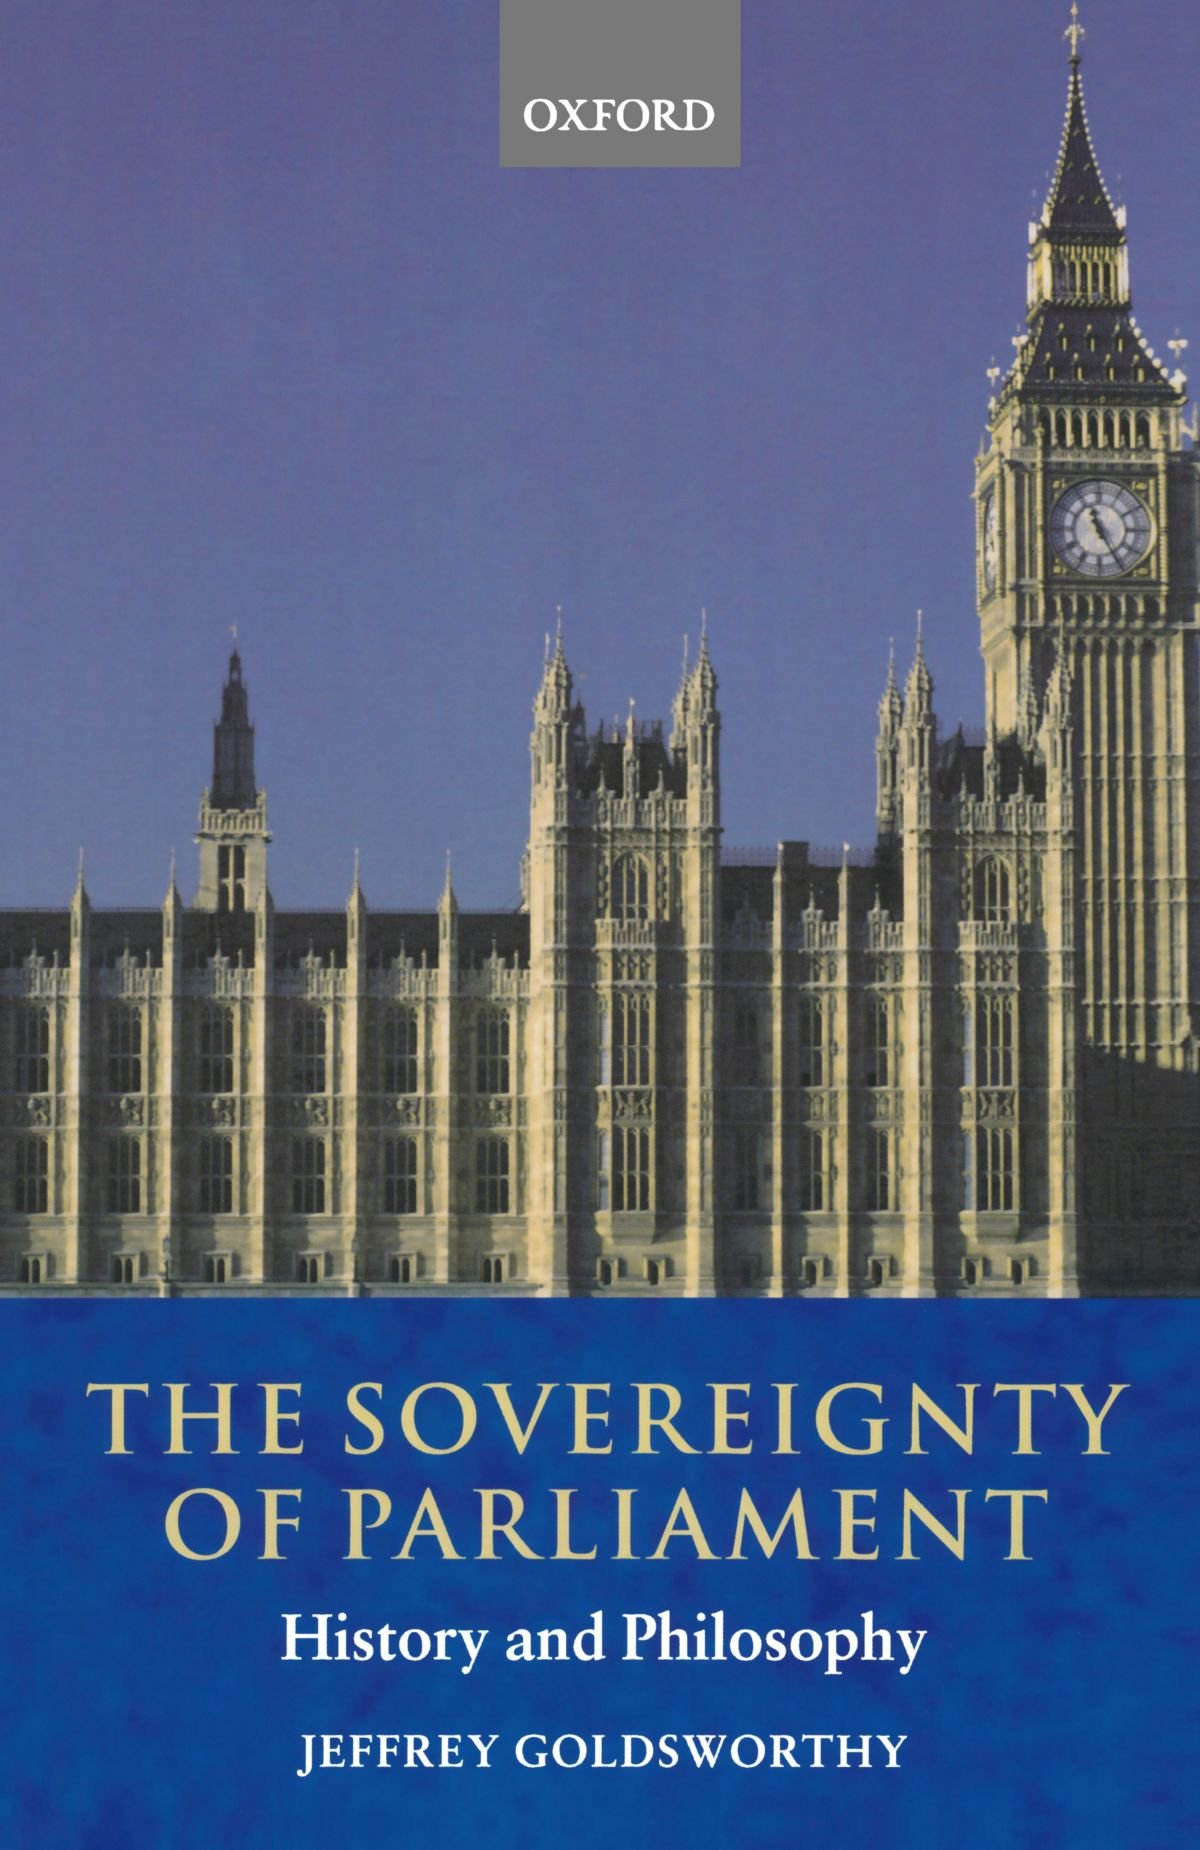 parliamentary sovereignty contemporary debates cambridge studies the sovereignty of parliament history and philosophy